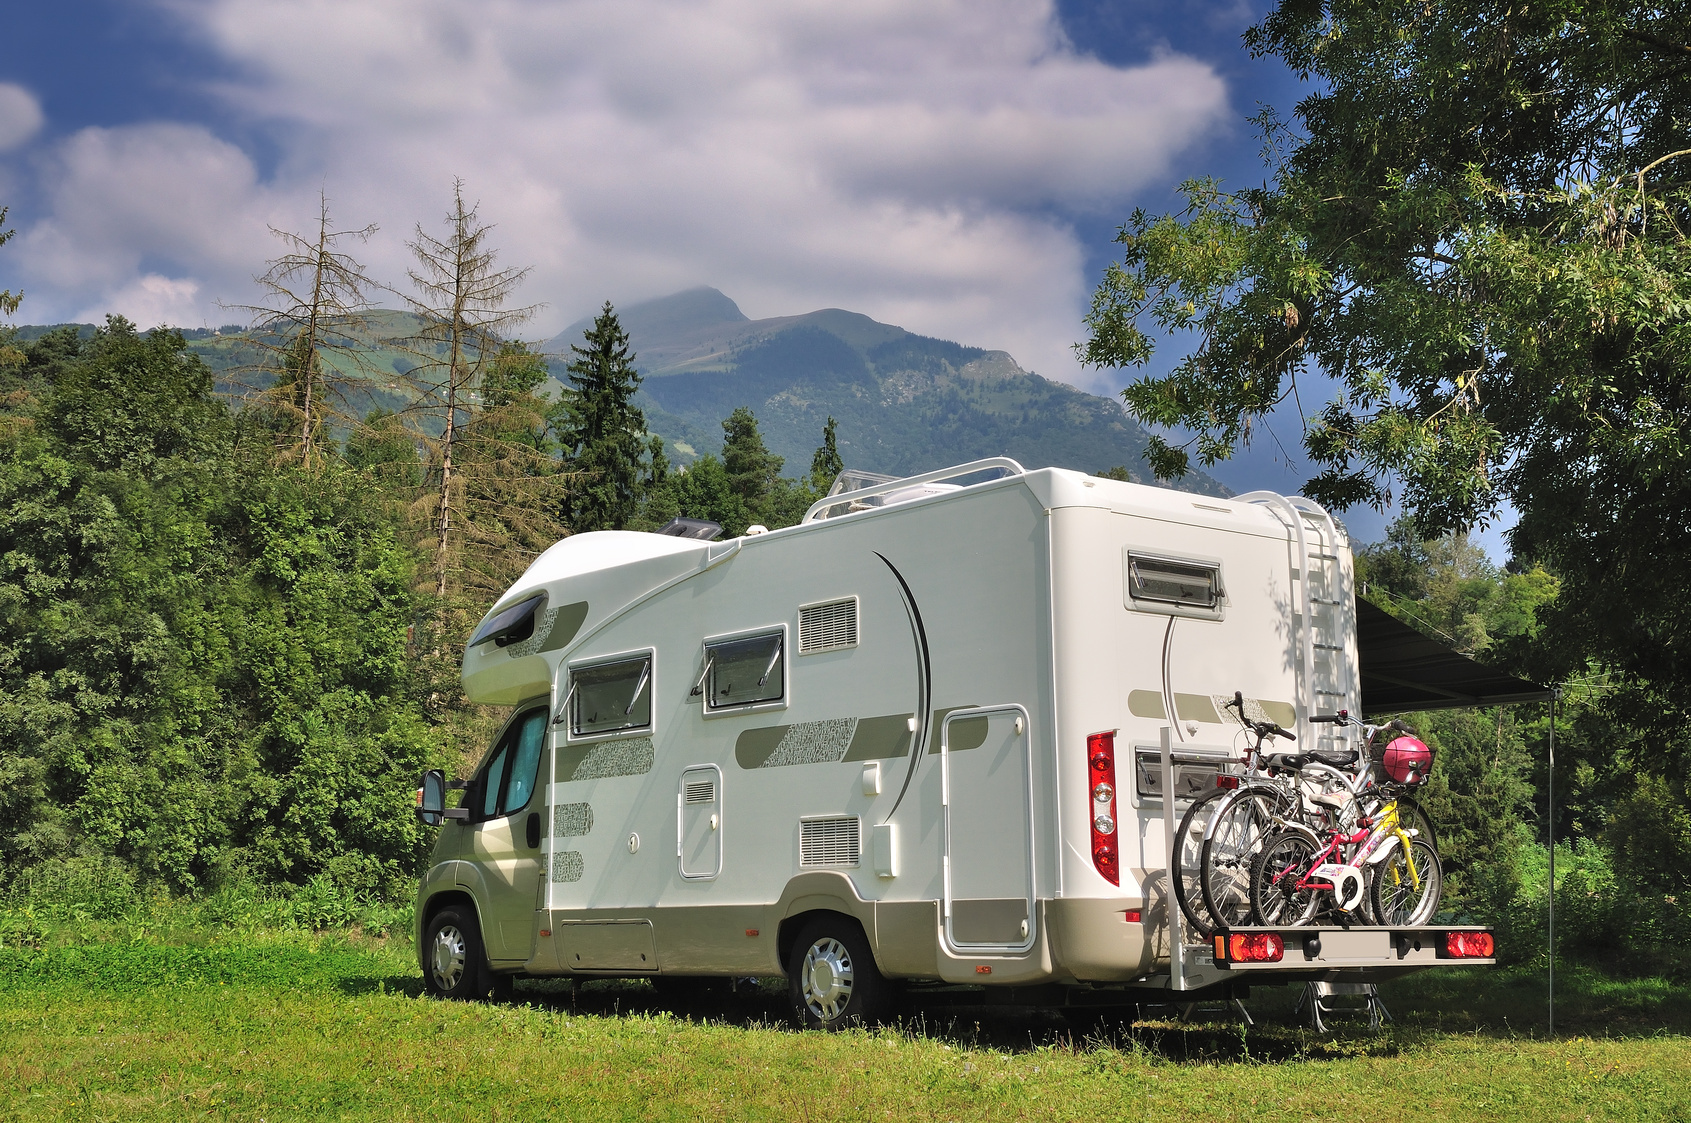 Motorhome near the mountains